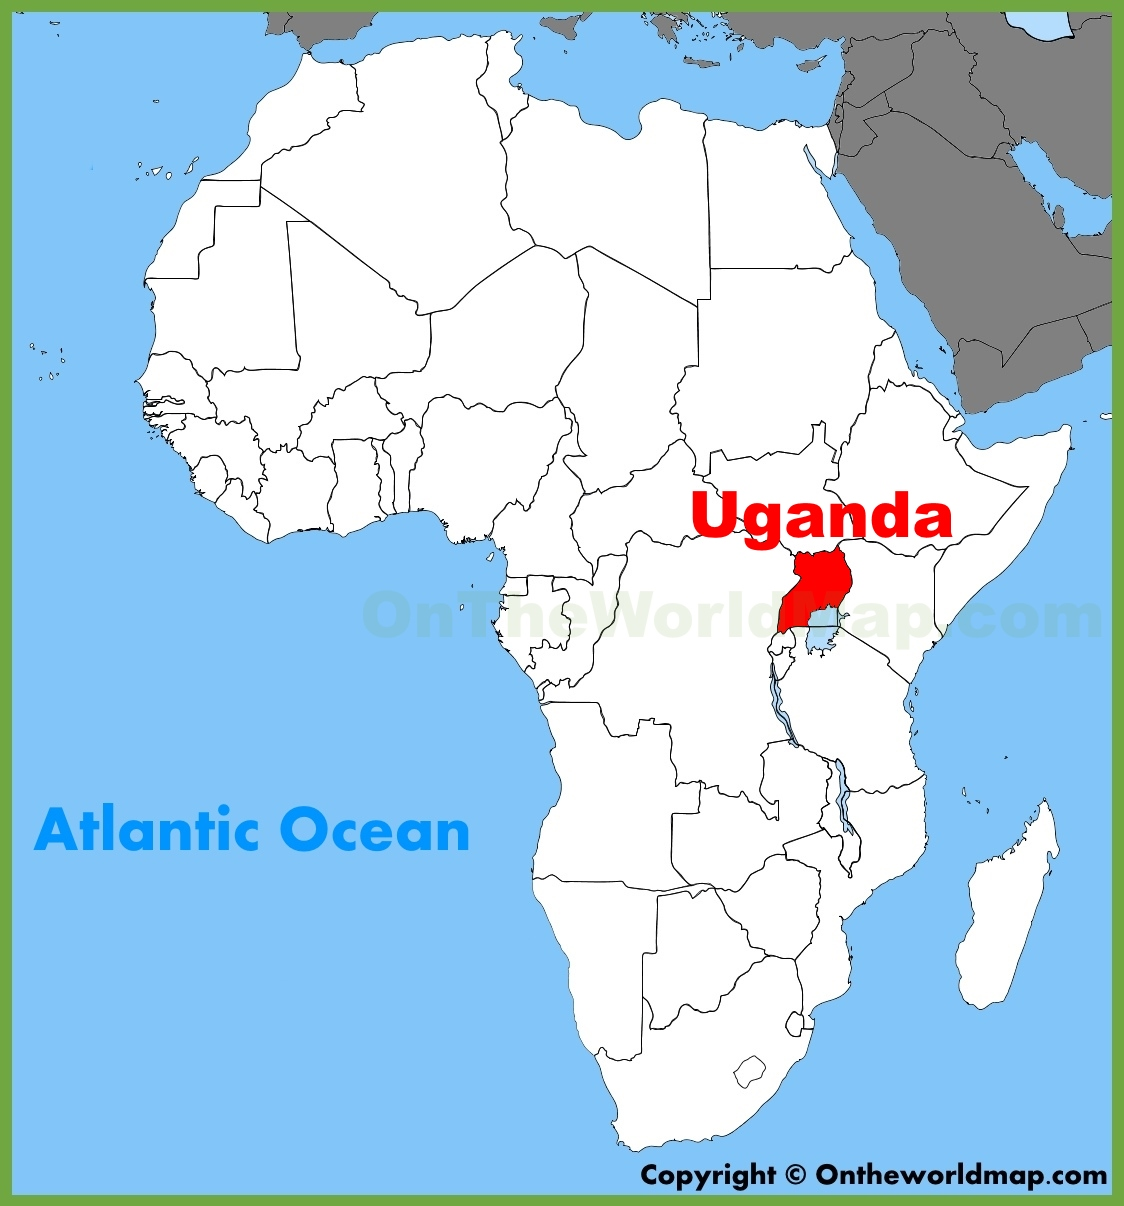 Map Of Uganda In Africa Uganda location on the Africa map